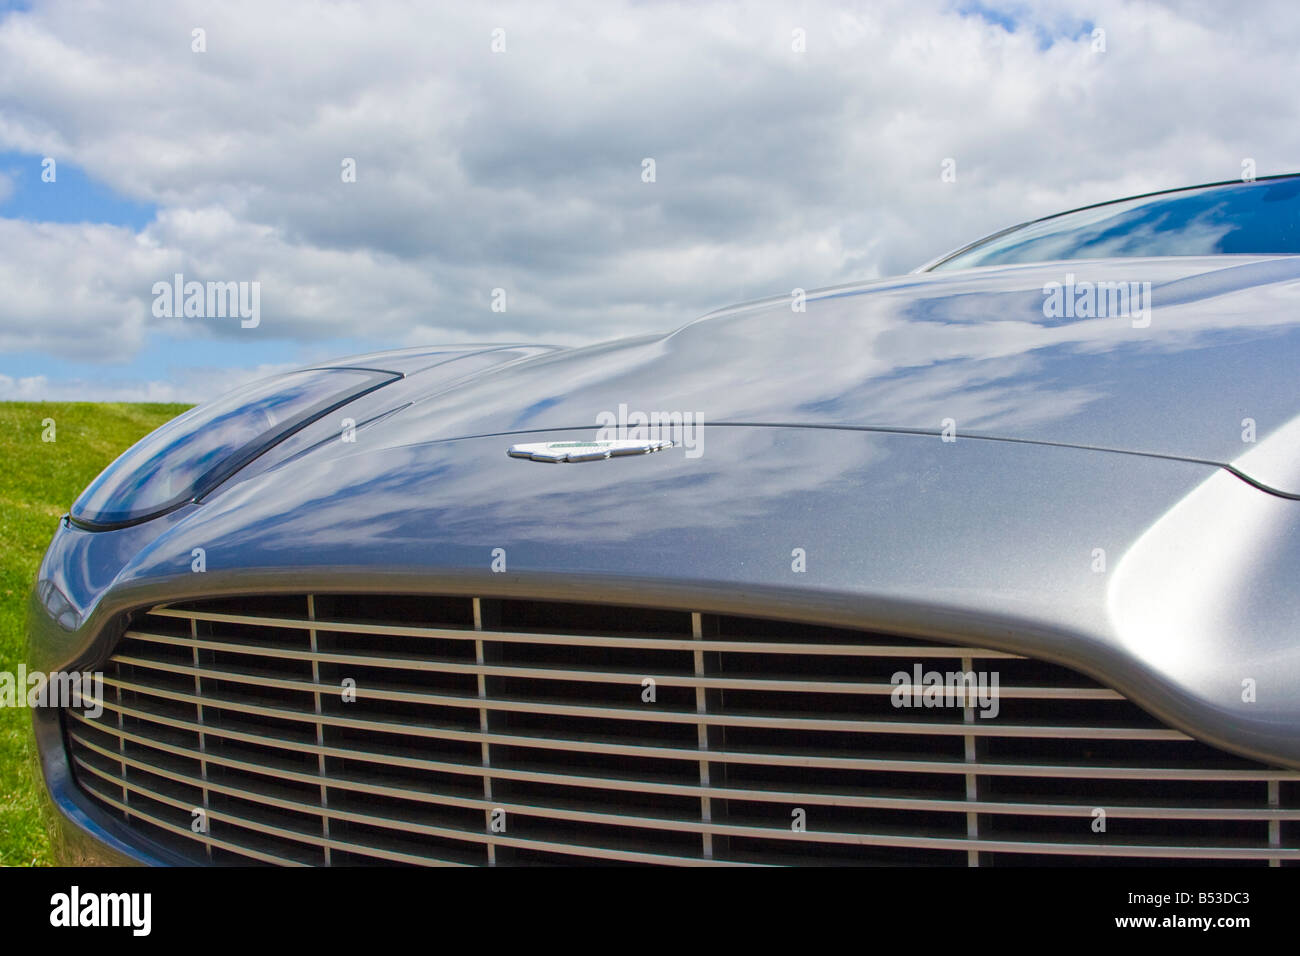 Bonnet And Grille Of A Silver Aston Martin Vanquish With Blue